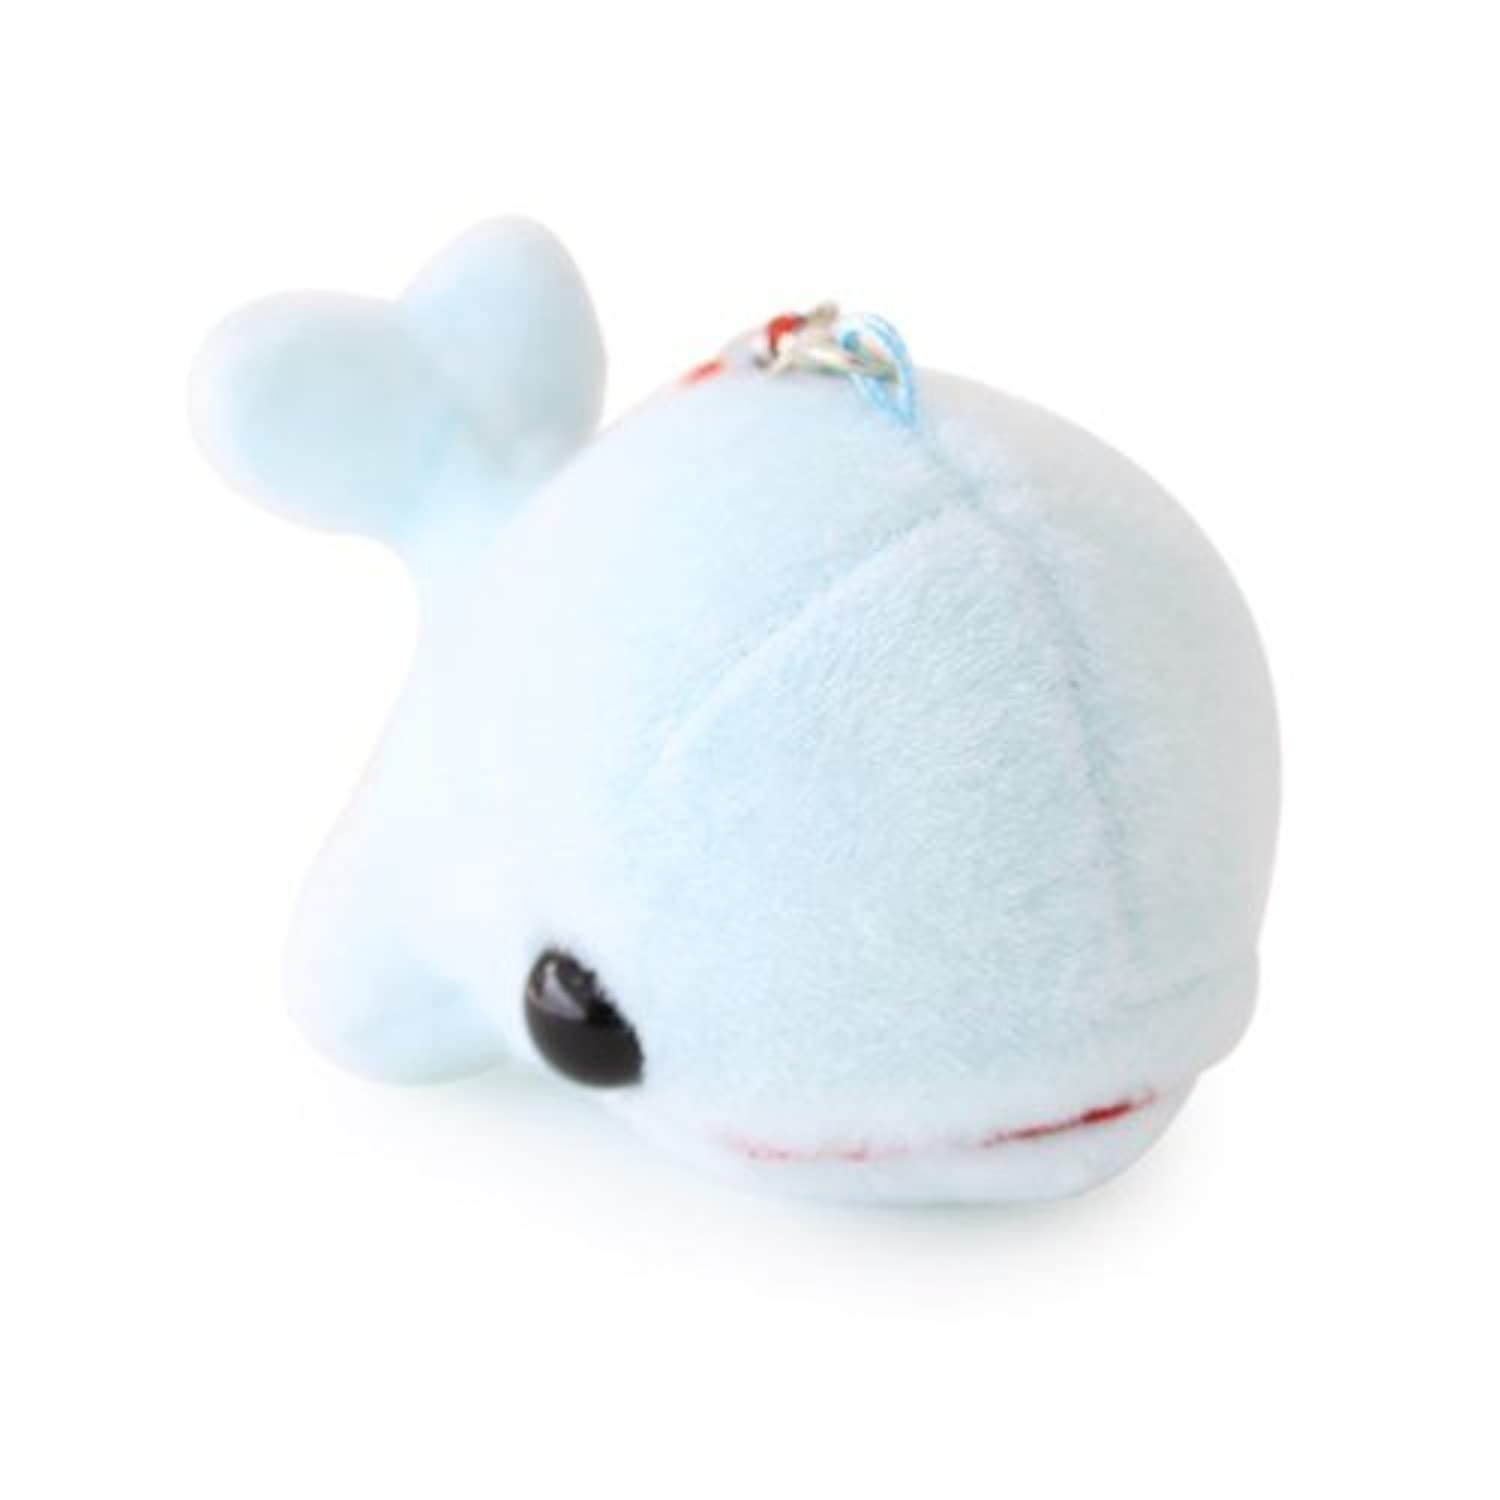 Phone Ring Toy - Cotton ANI Dolphin Dong dong 9cm Blue